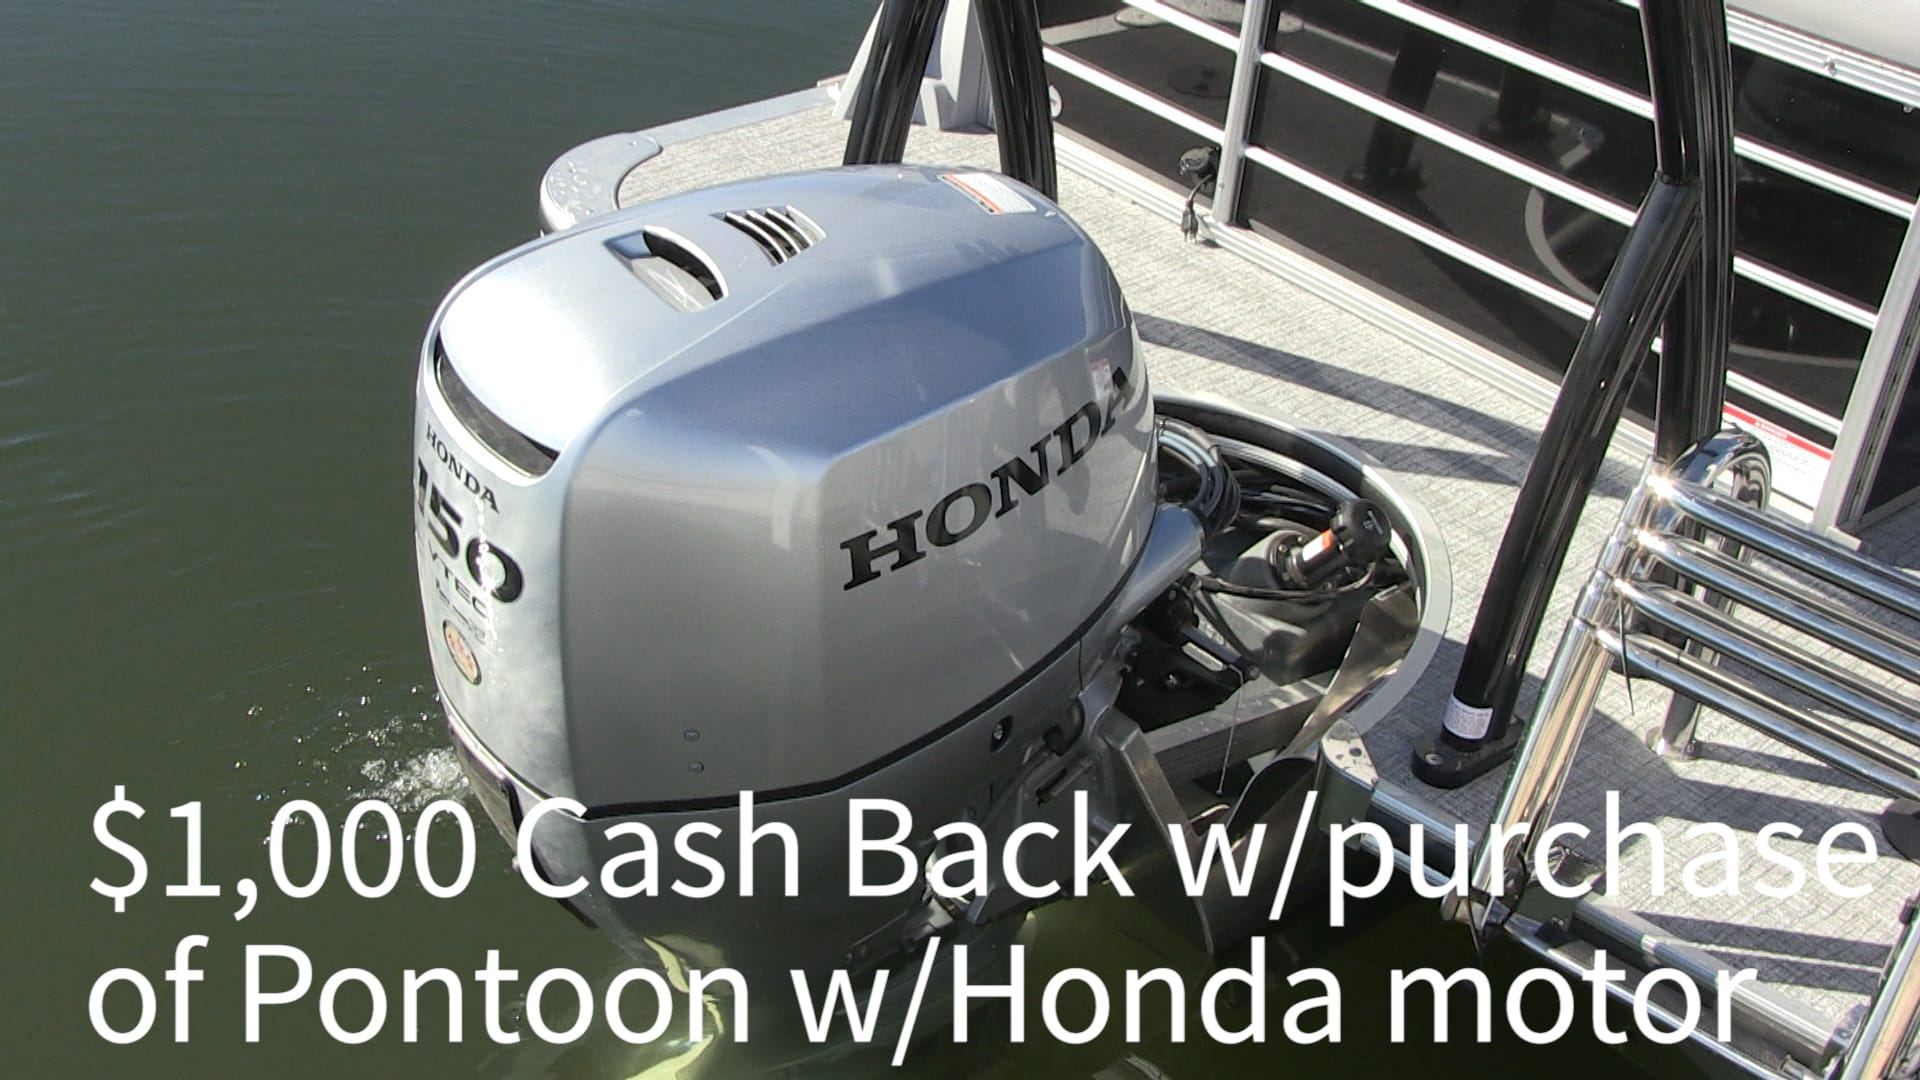 Get $1,000 cash back with Honda Motor